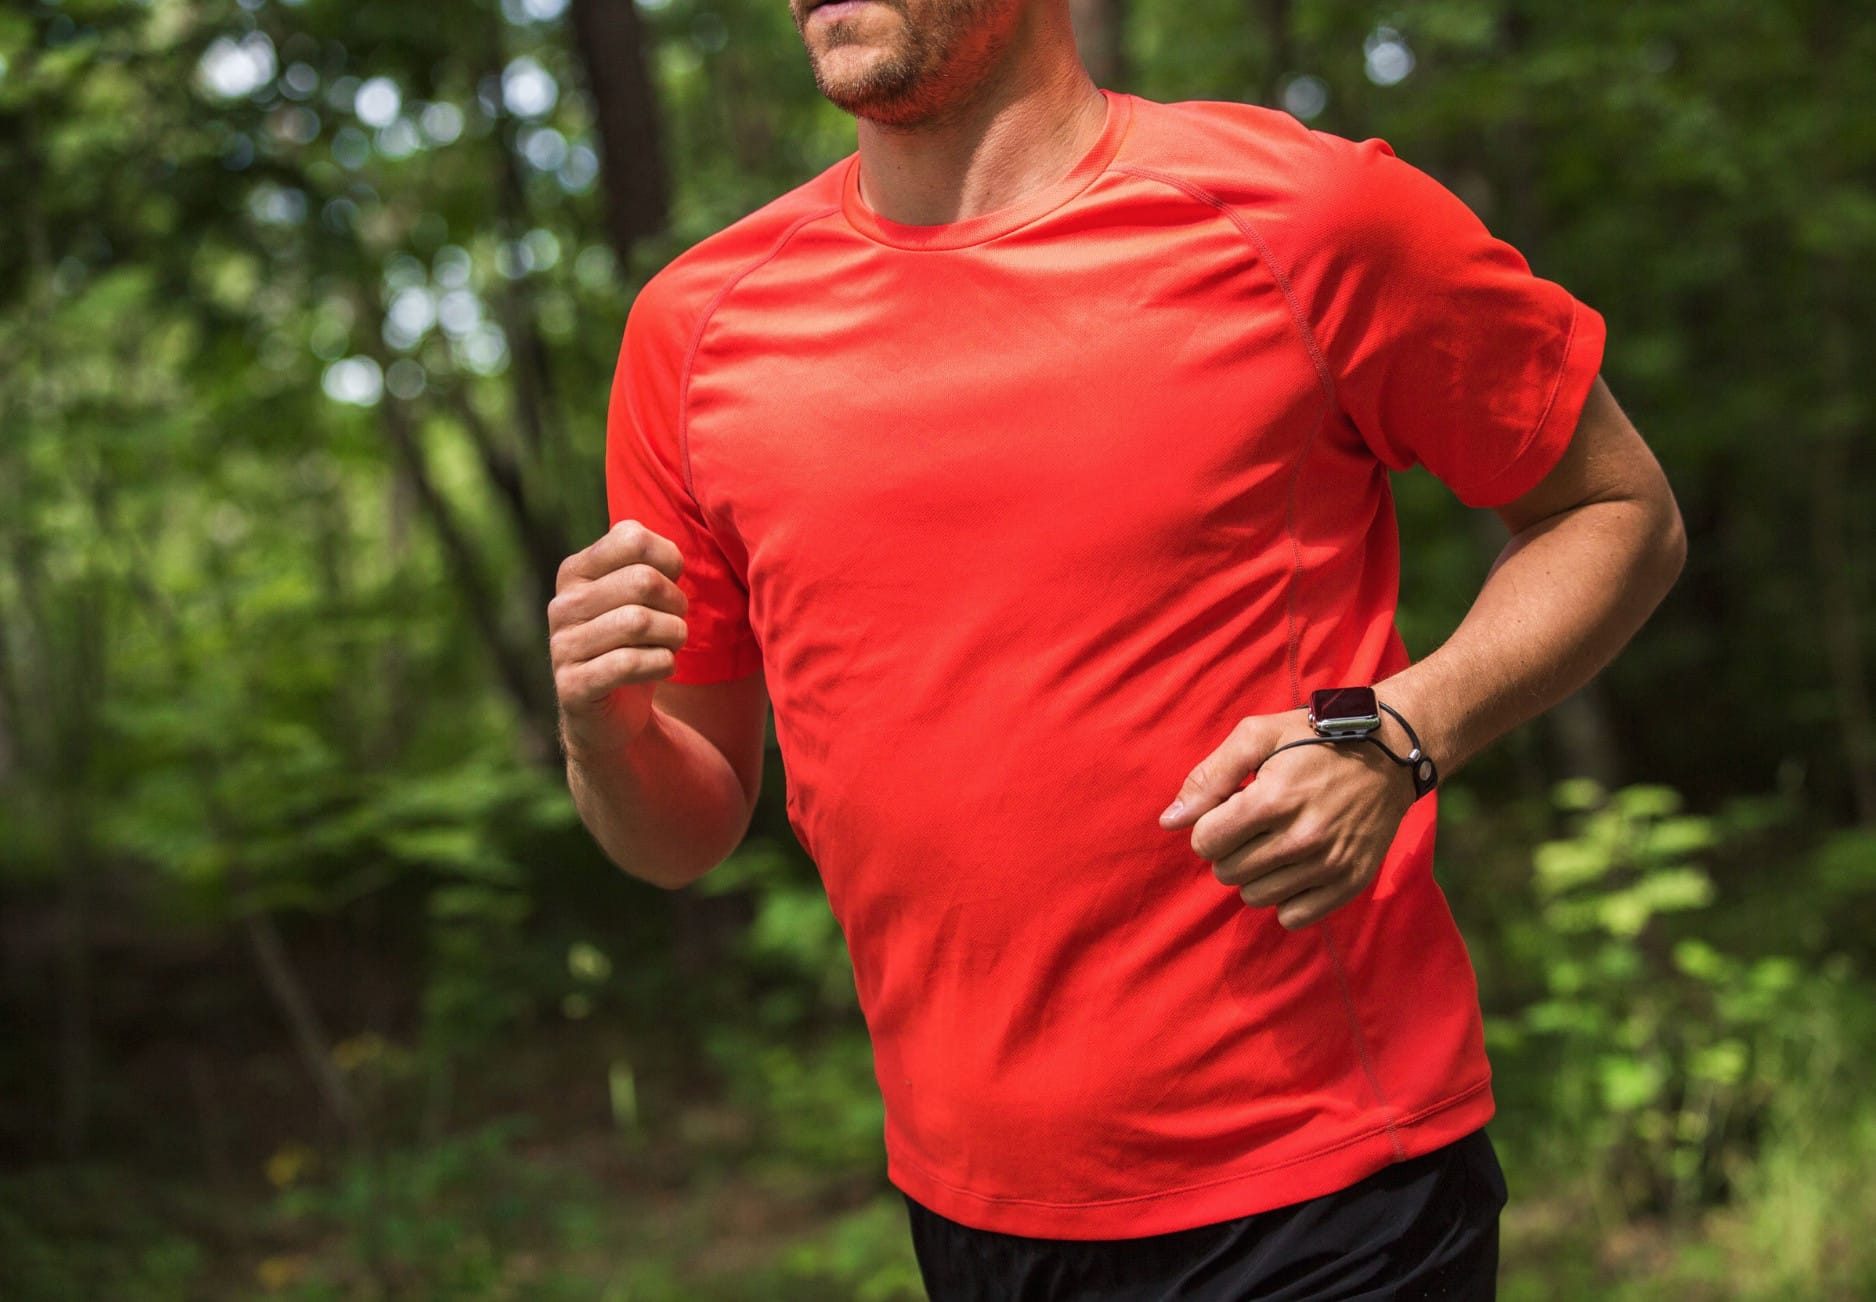 Shift is super light and stays in place throughout your run.